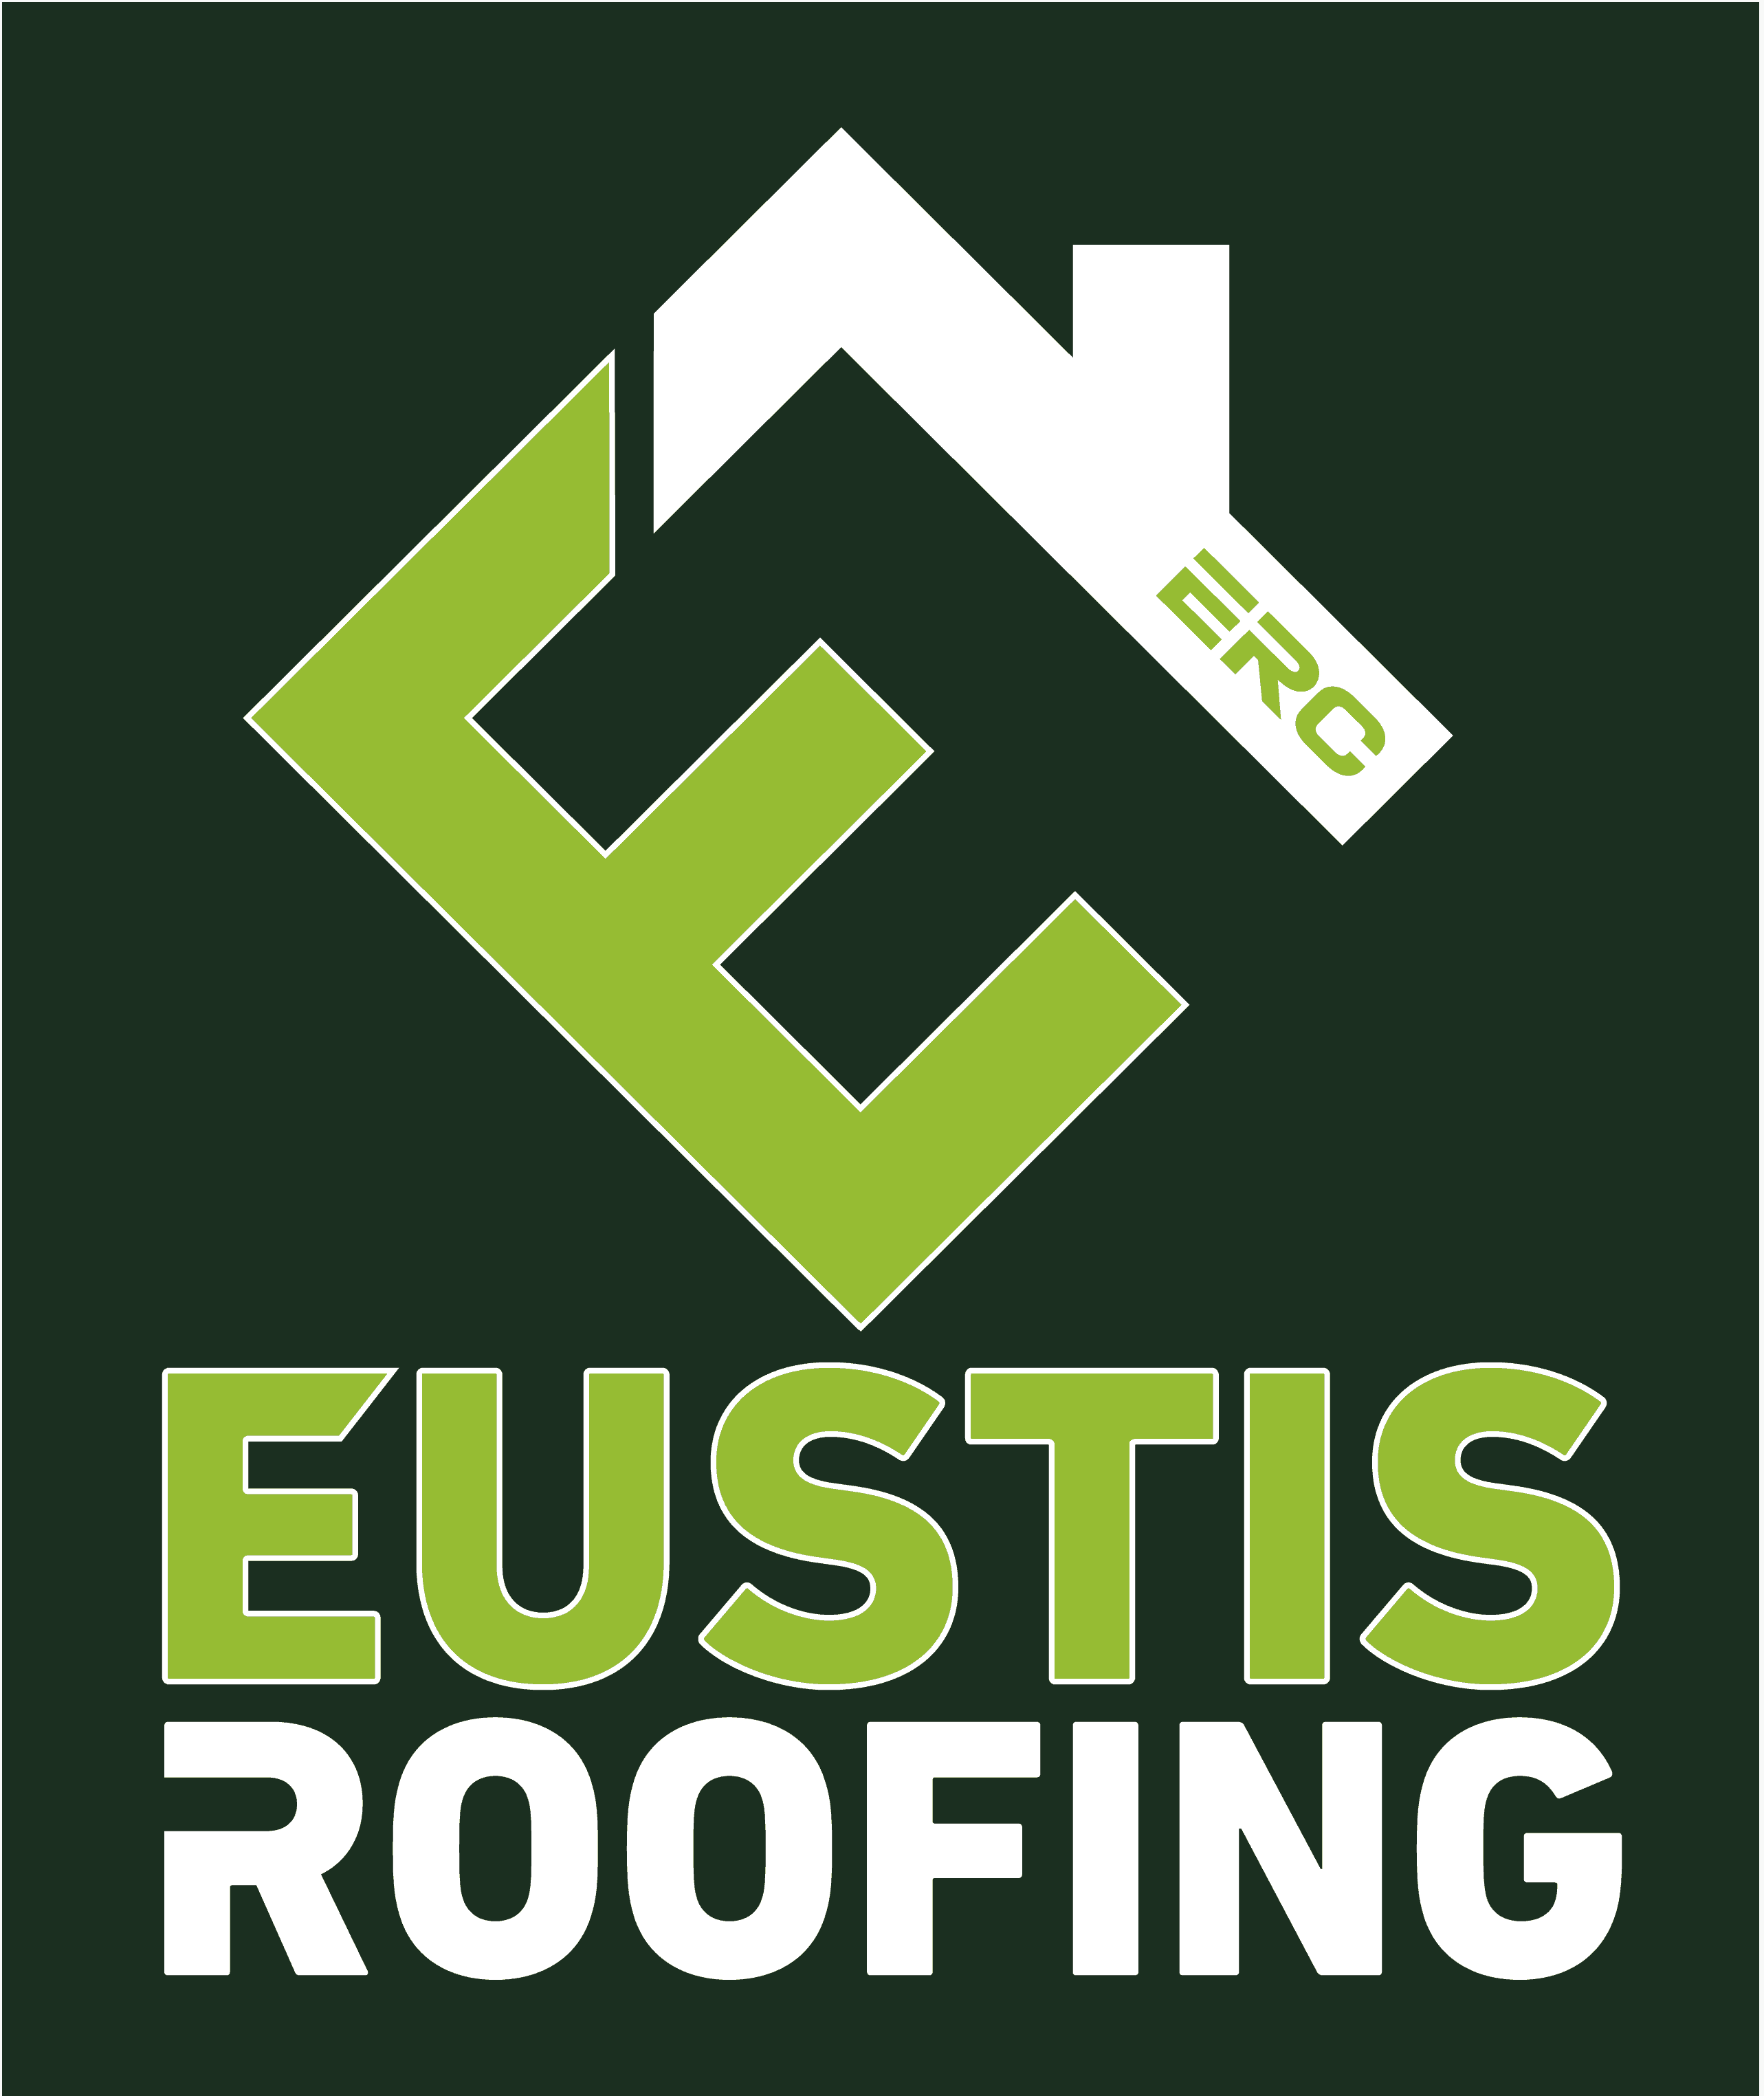 Eustis Roofing Company - Lake County Roofing Company